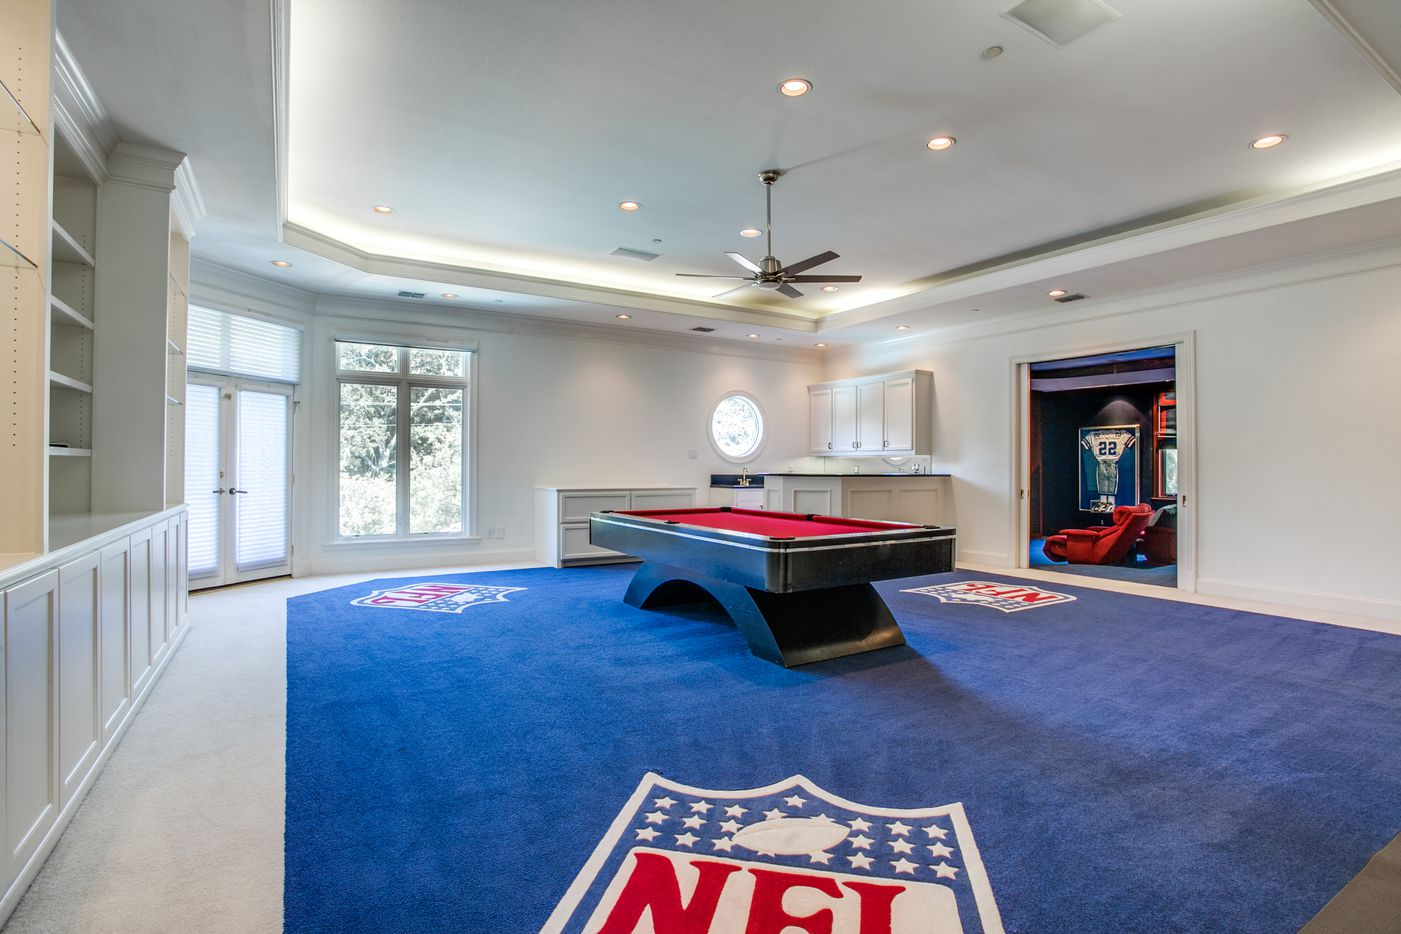 Take a look at the home at 15001 Winnwood Road in Dallas. The home was custom built for former Dallas Cowboys running back Emmitt Smith in 1995.